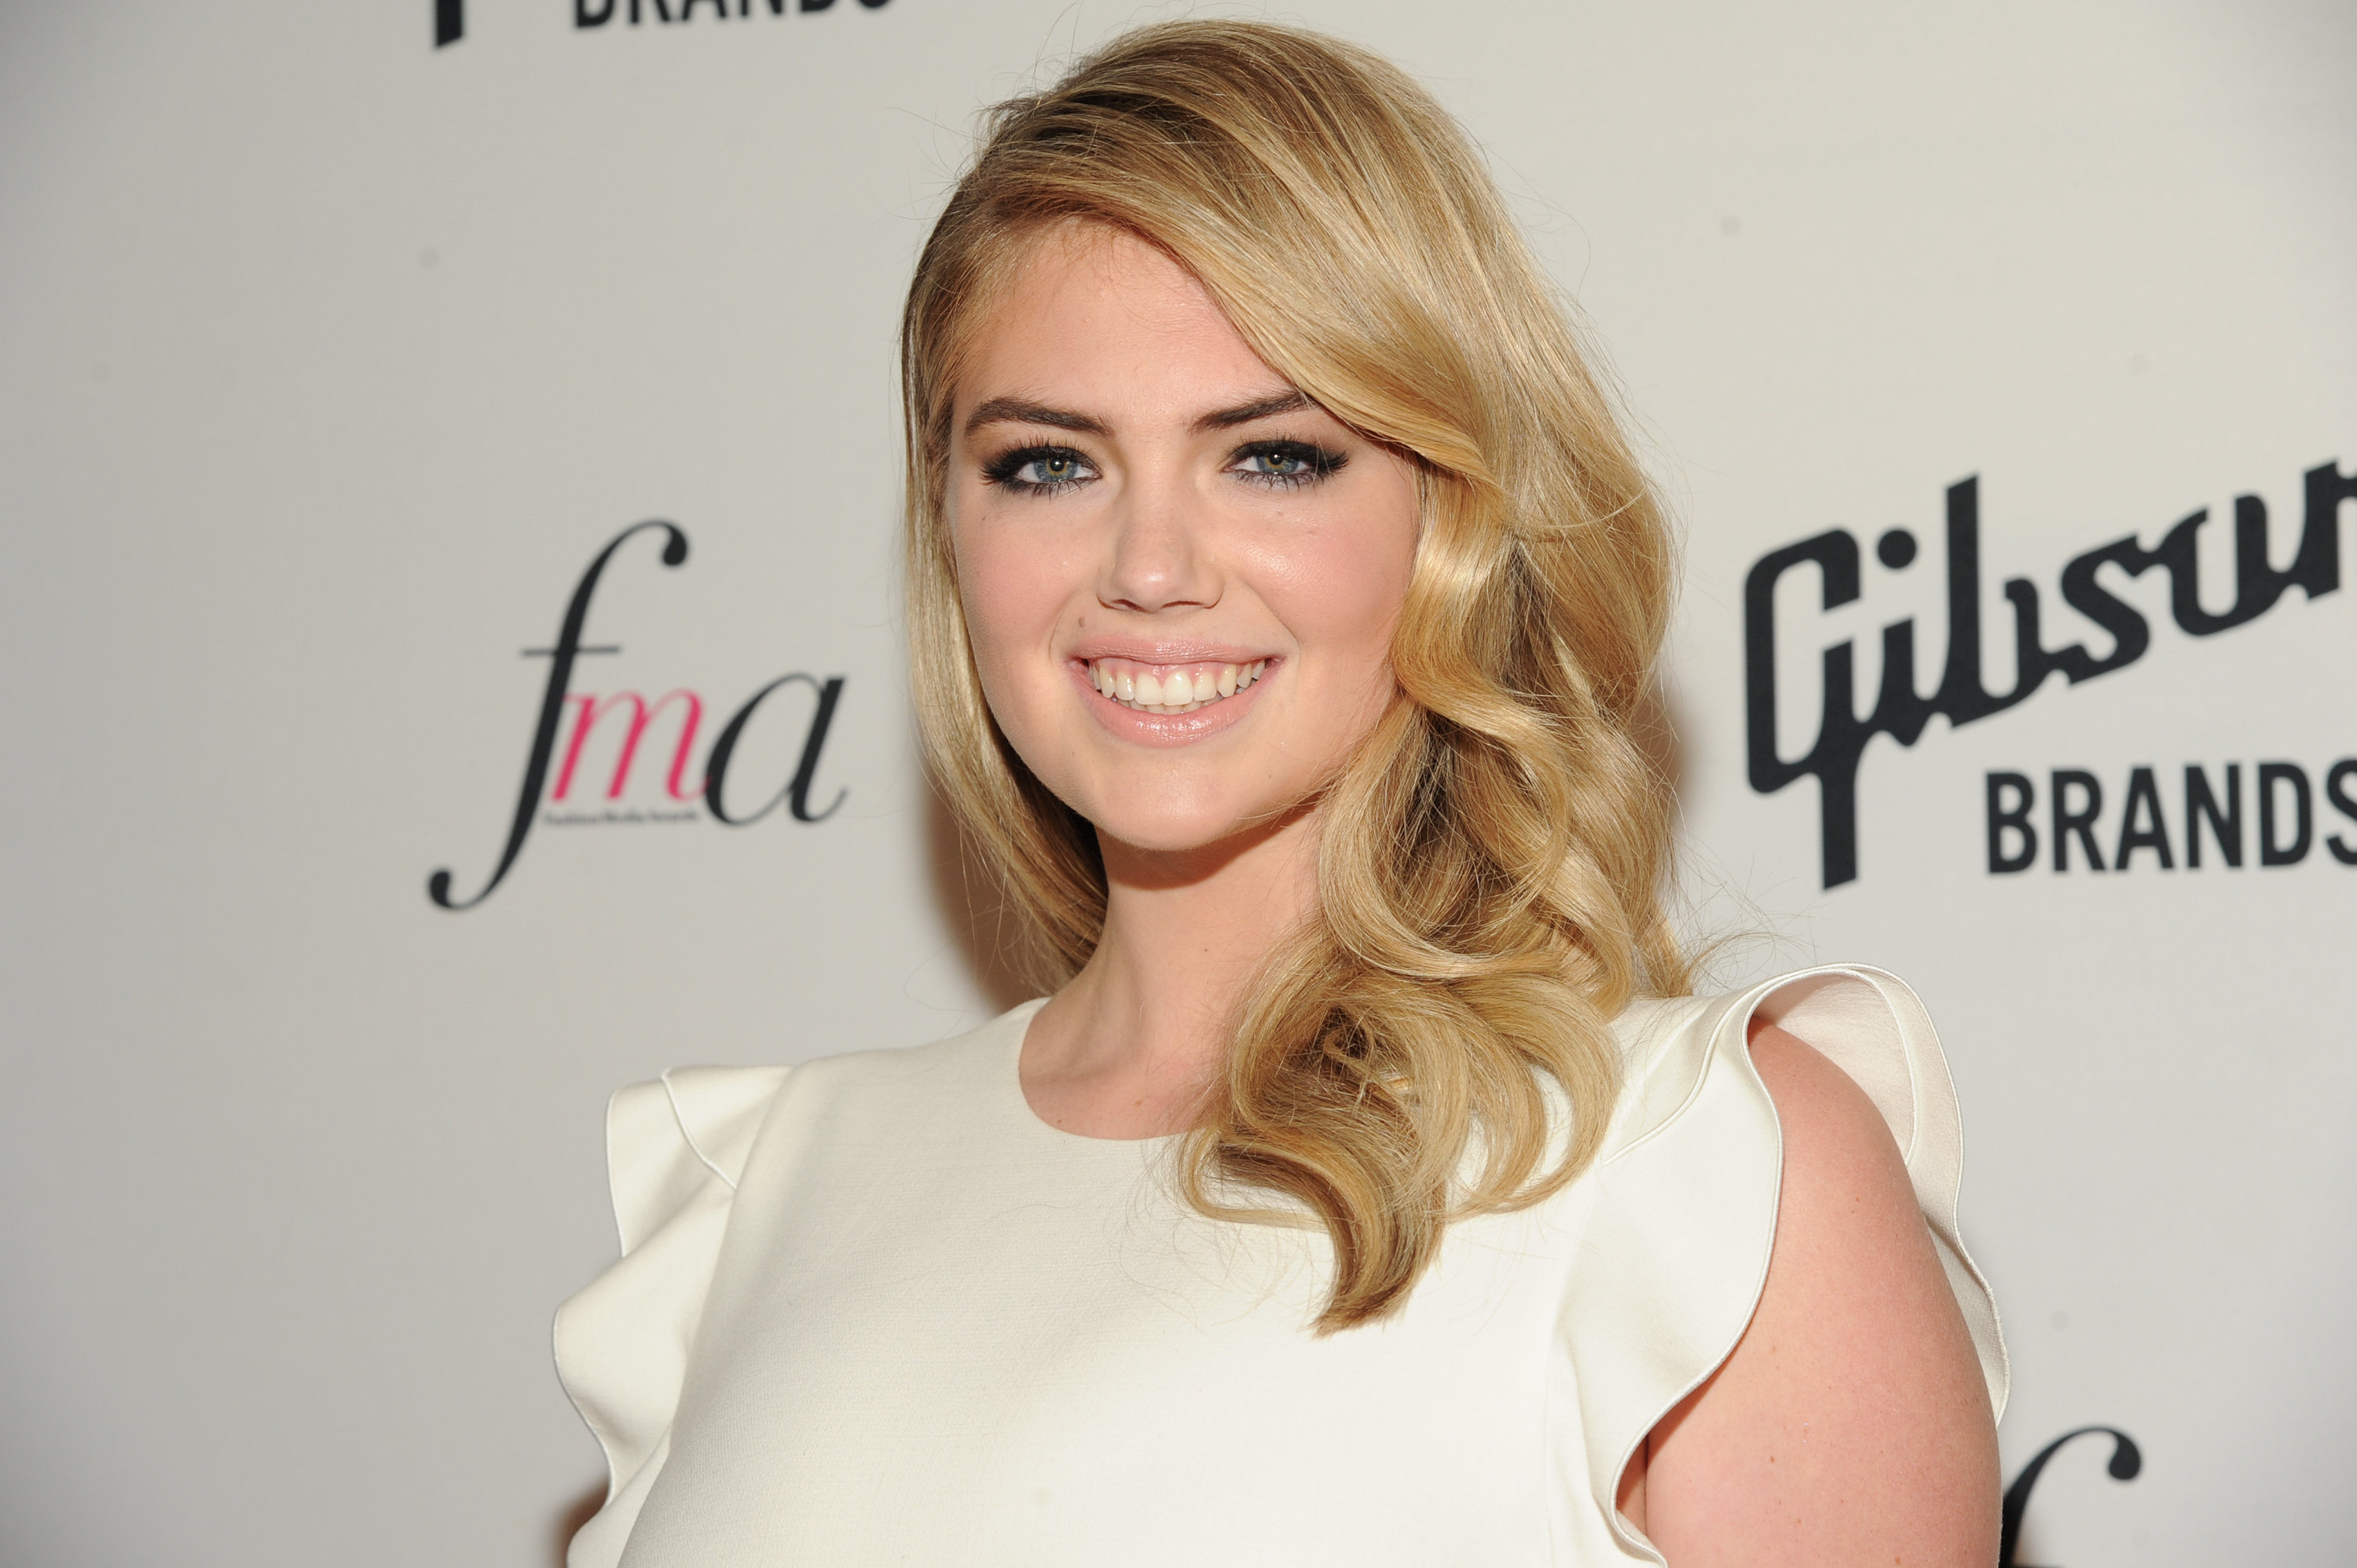 Model Kate Upton attends The Daily Front Row Second Annual Fashion Media Awards at Park Hyatt New York on September 5, 2014 in New York City.